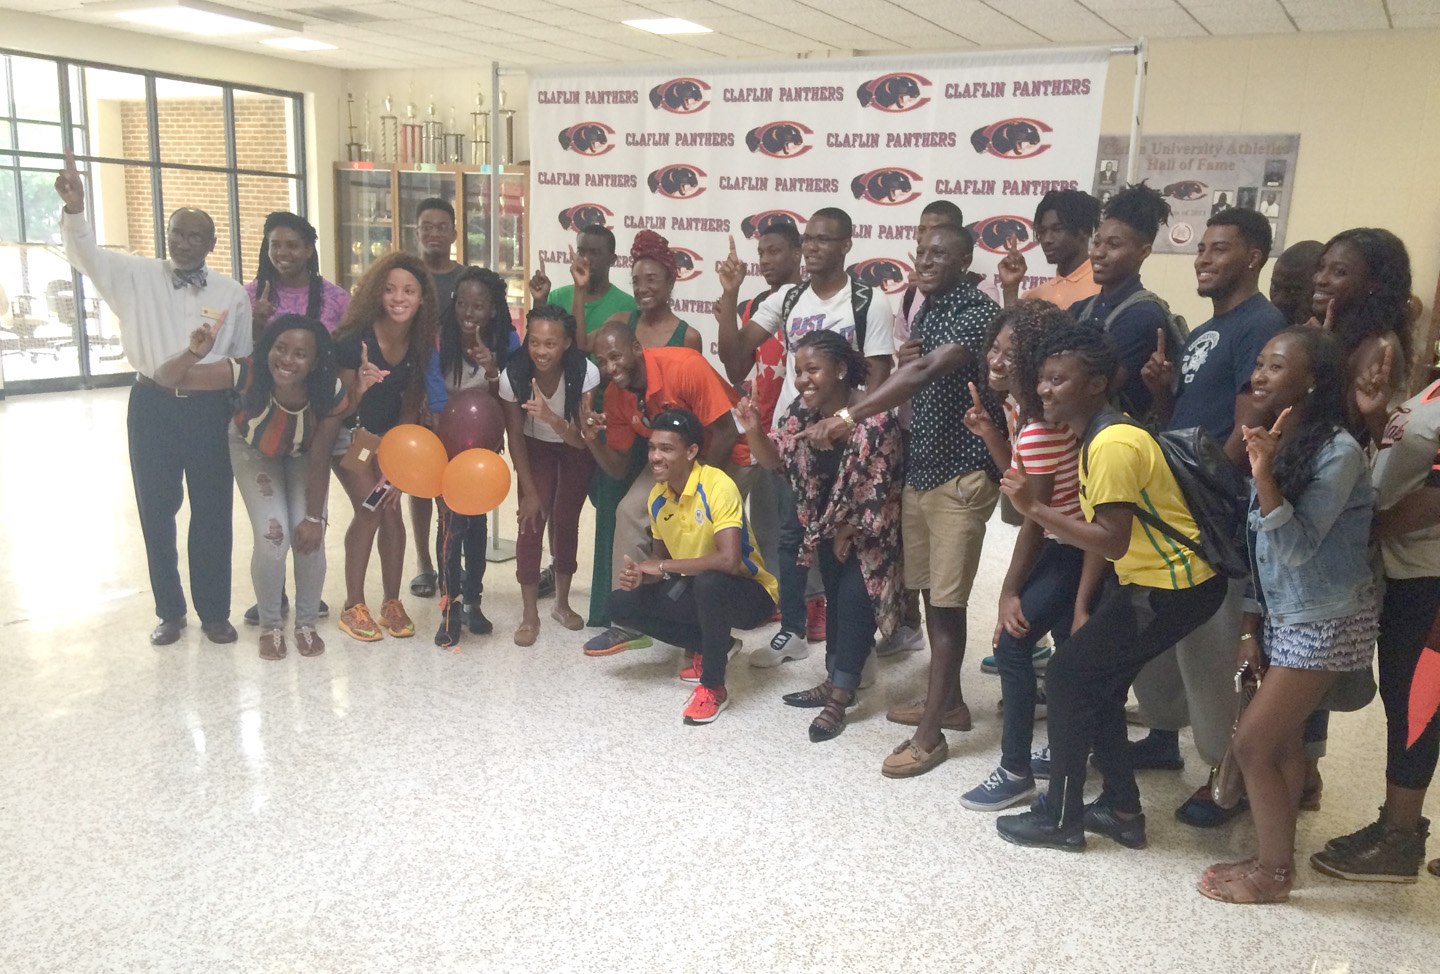 Brandon Valentine-Parris Poses with other Claflin Students